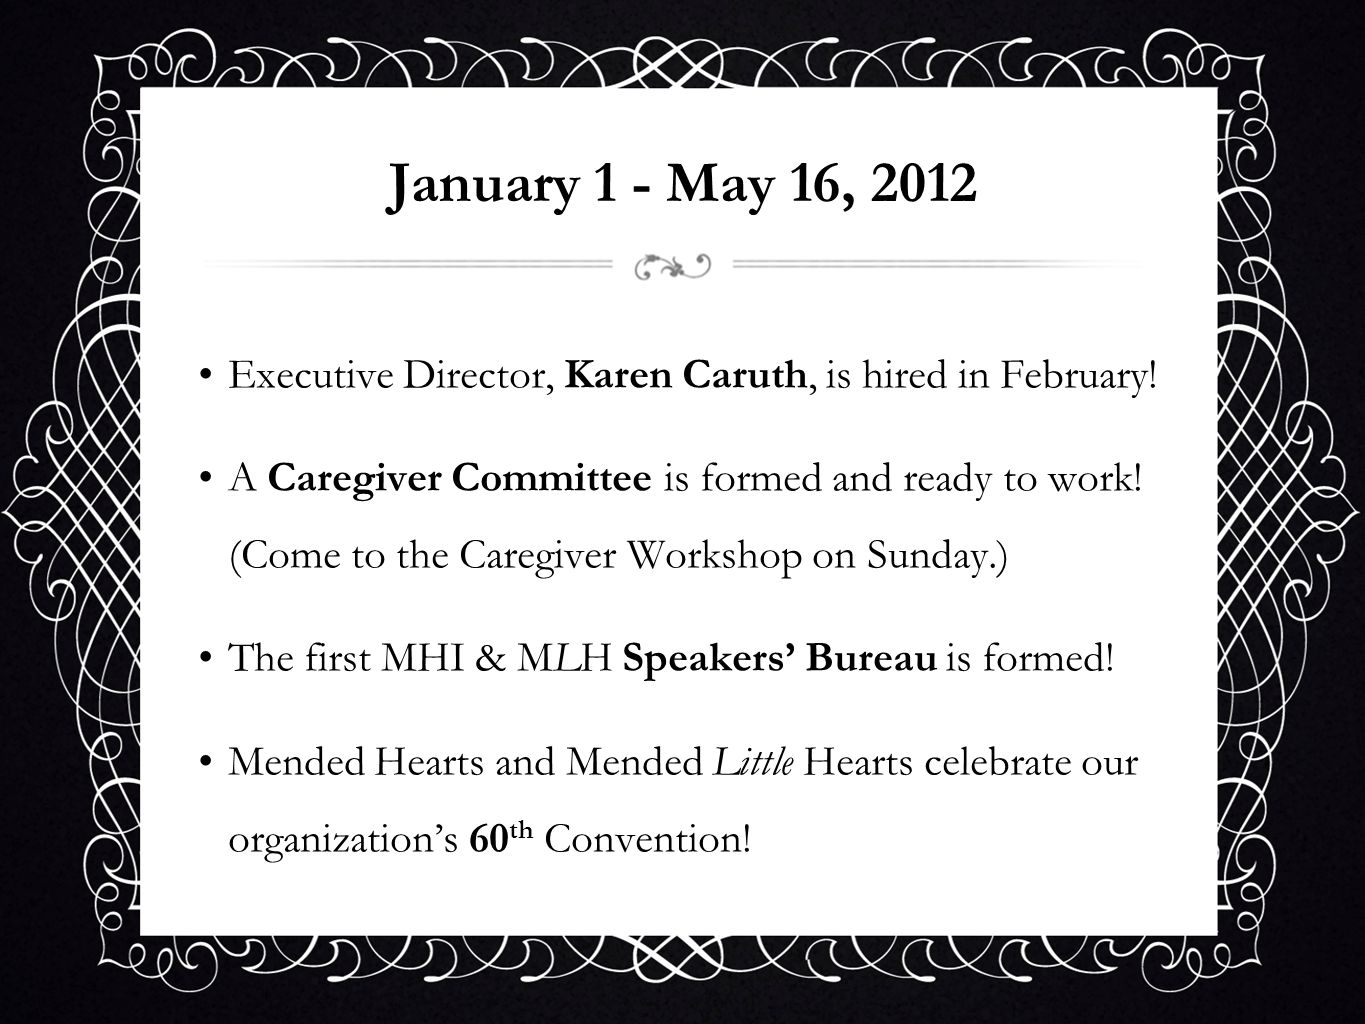 January 1 - May 16, 2012 Executive Director, Karen Caruth, is hired in February!